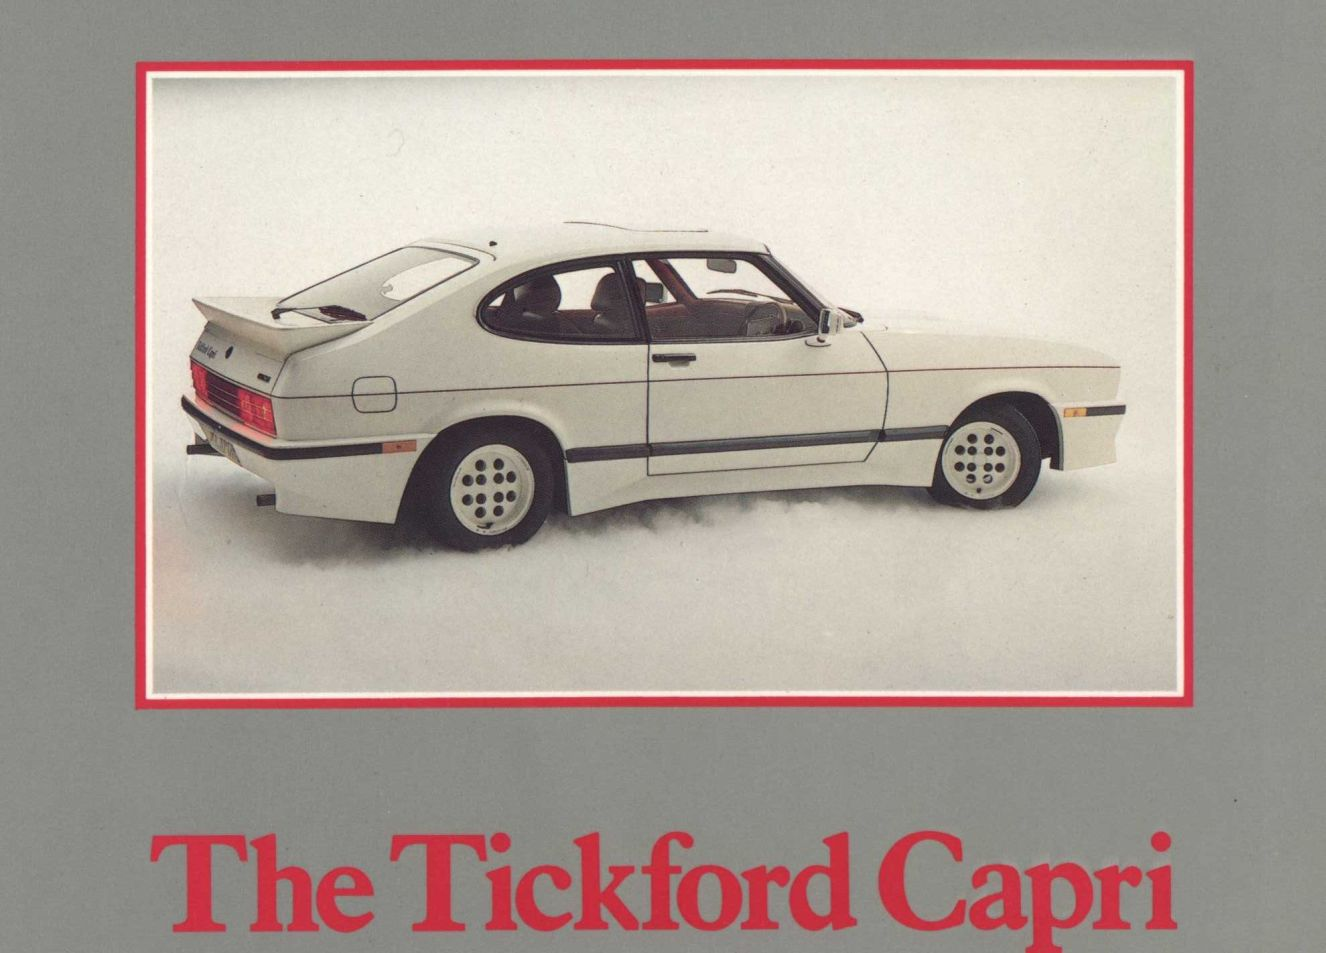 aston martin tickford capri wallpaper #14